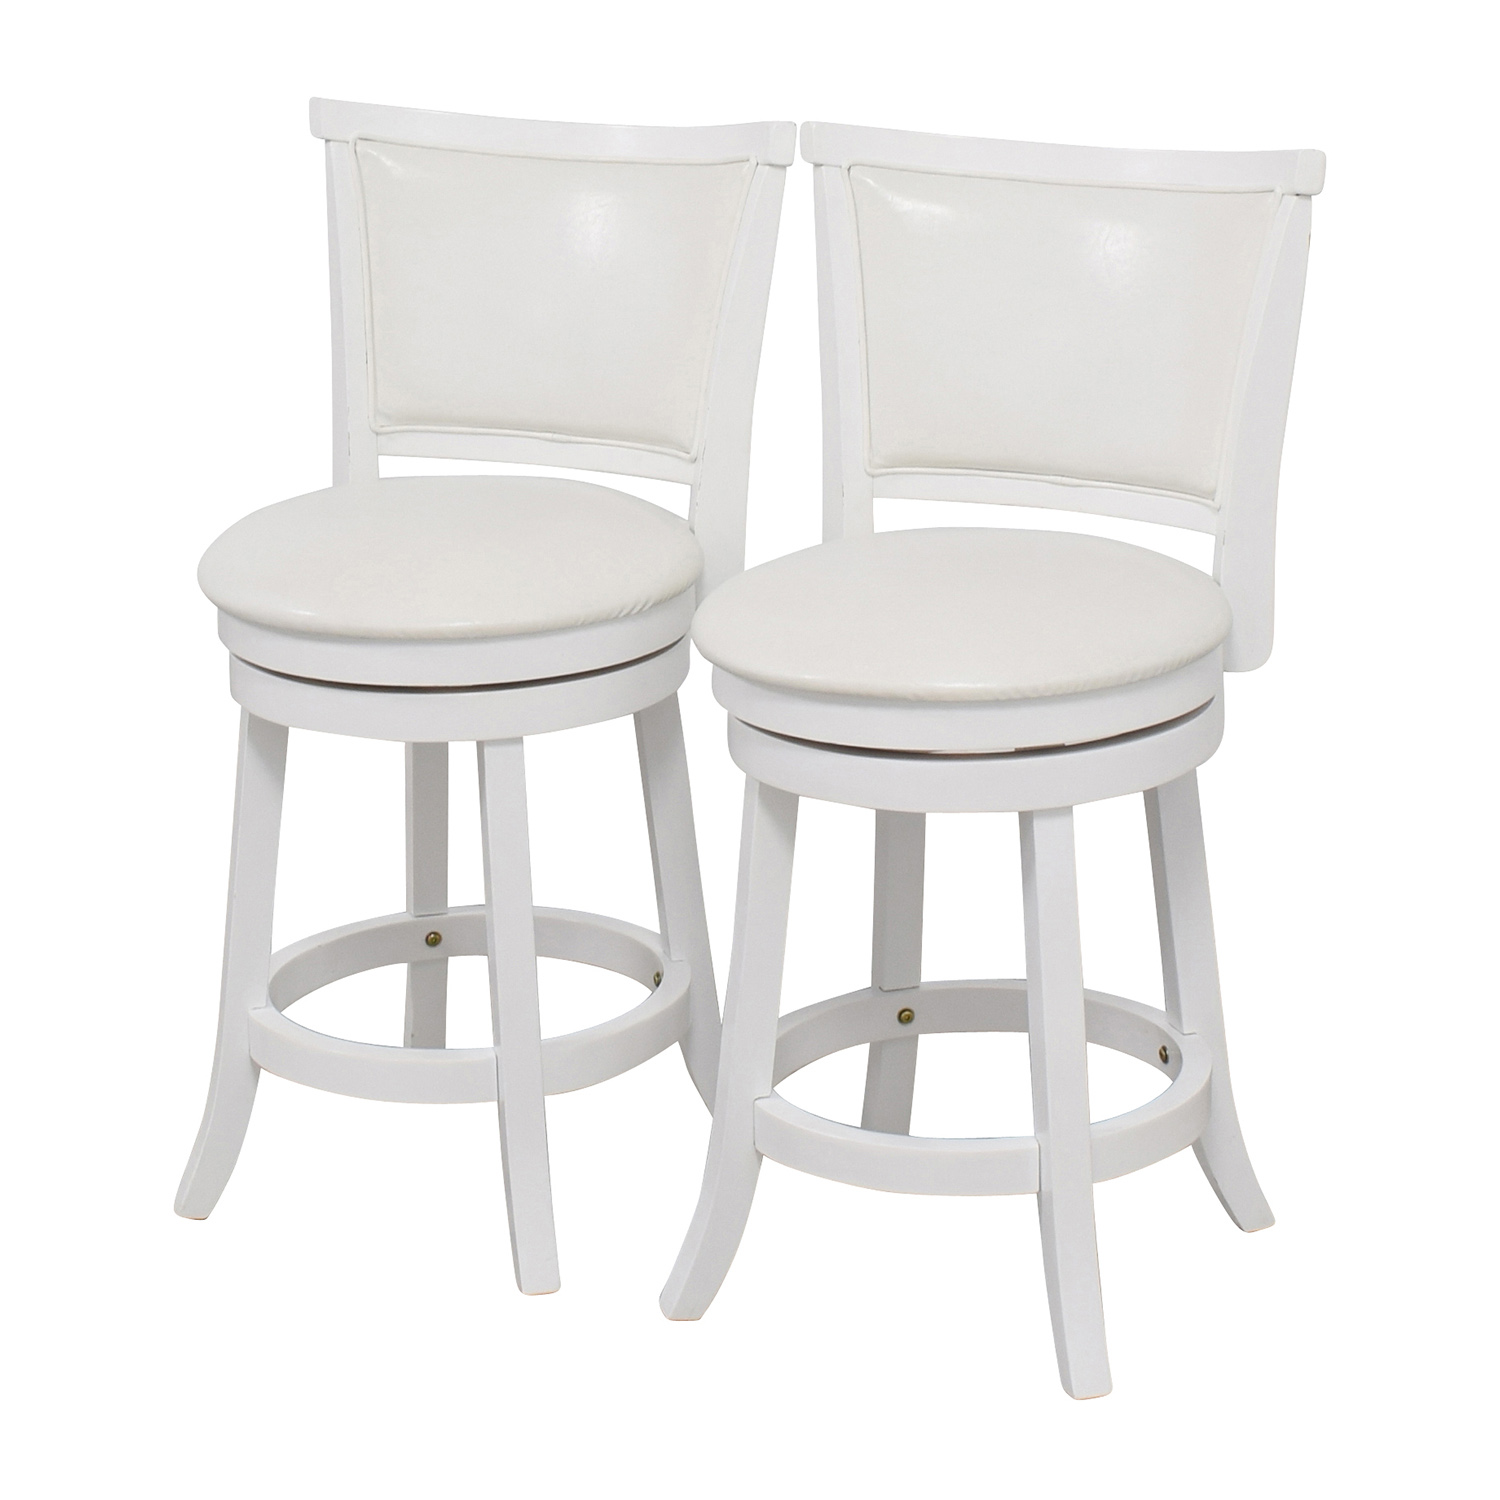 CorLiving CorLiving White Leatherette Swivel Counter Height Bar Stool nyc